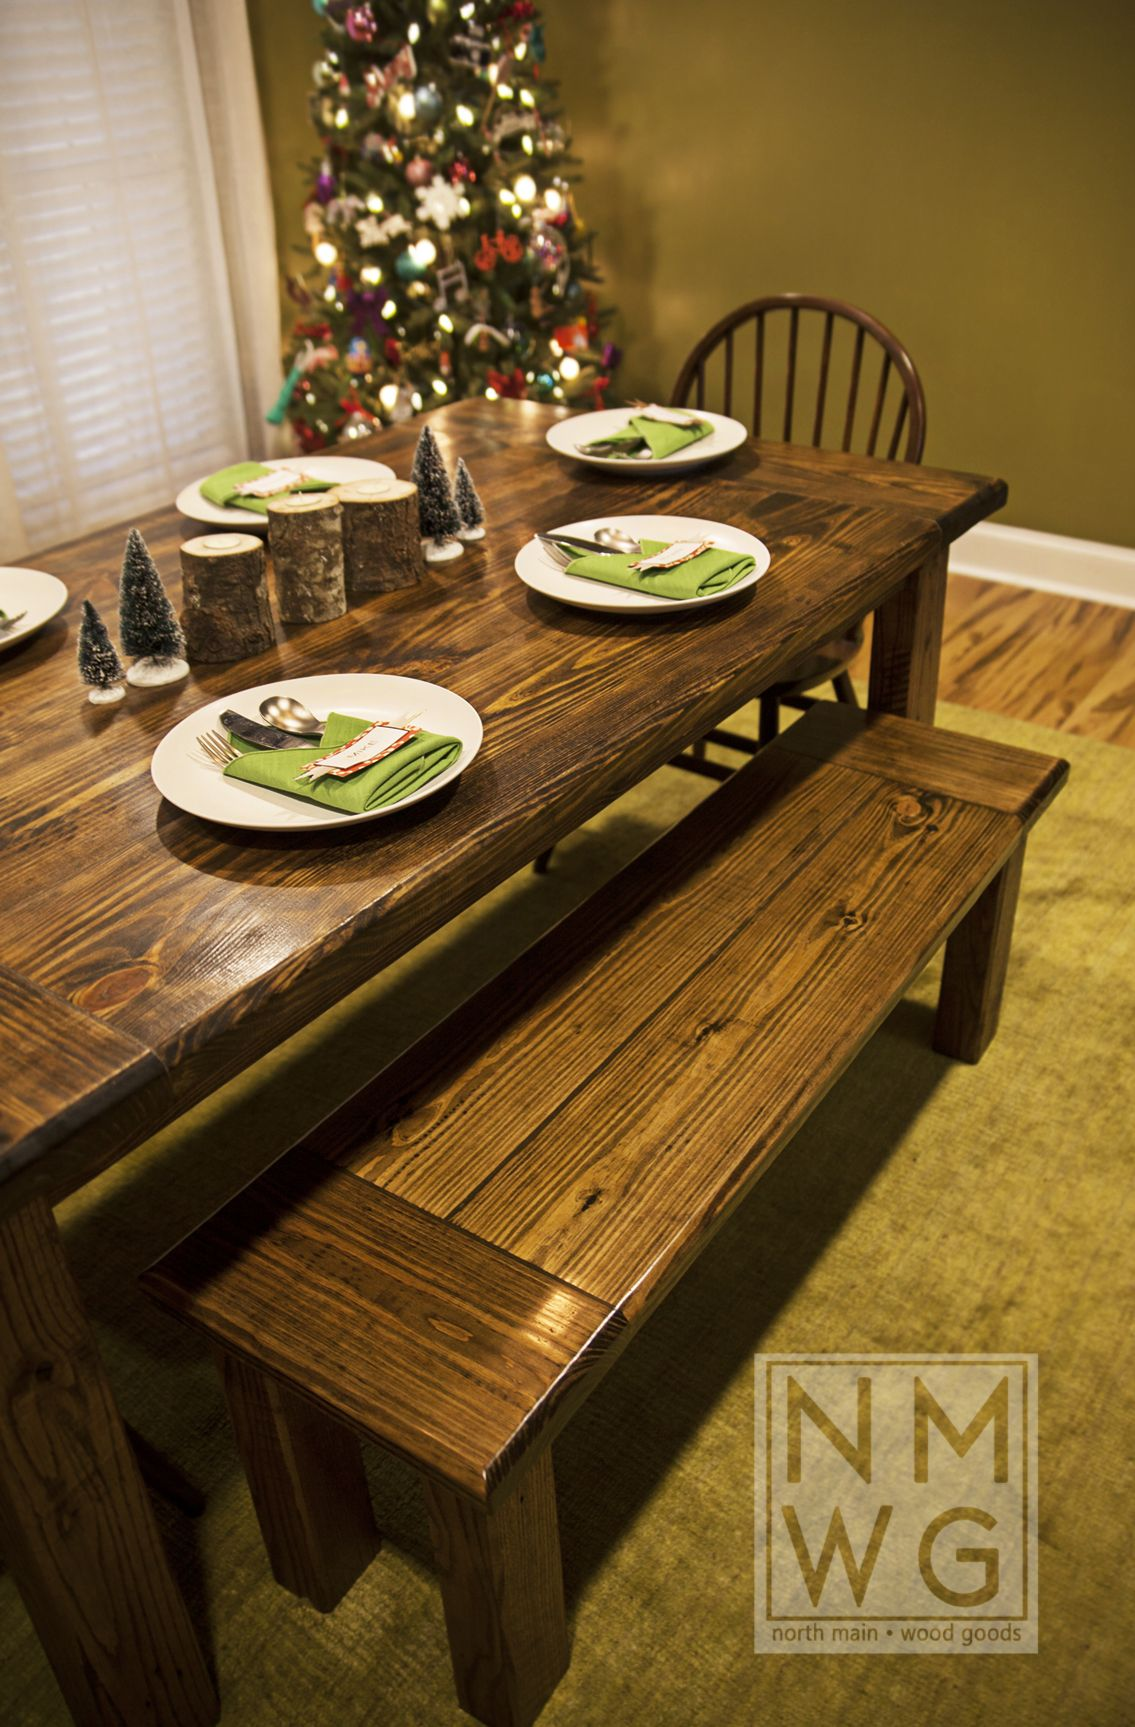 This Is A Pine Farmhouse Table Stained With Minwax Dark Walnut Stain The 3 Feet Wide And 5 Long Two Benches That Fit Directly